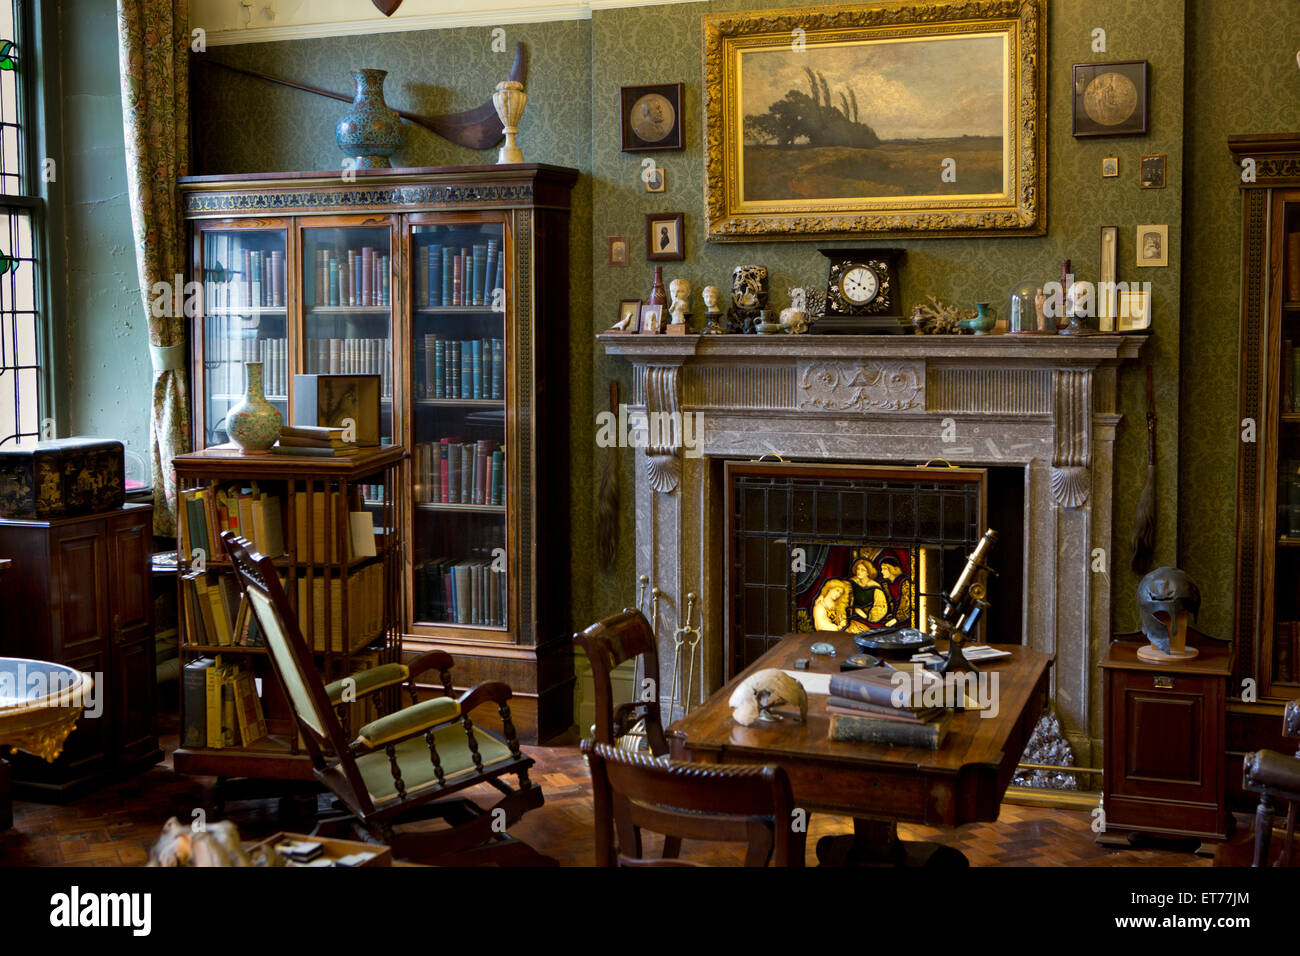 Uk England Derbyshire Buxton Museum And Art Gallery Boyd Dawkins Stock Photo Alamy